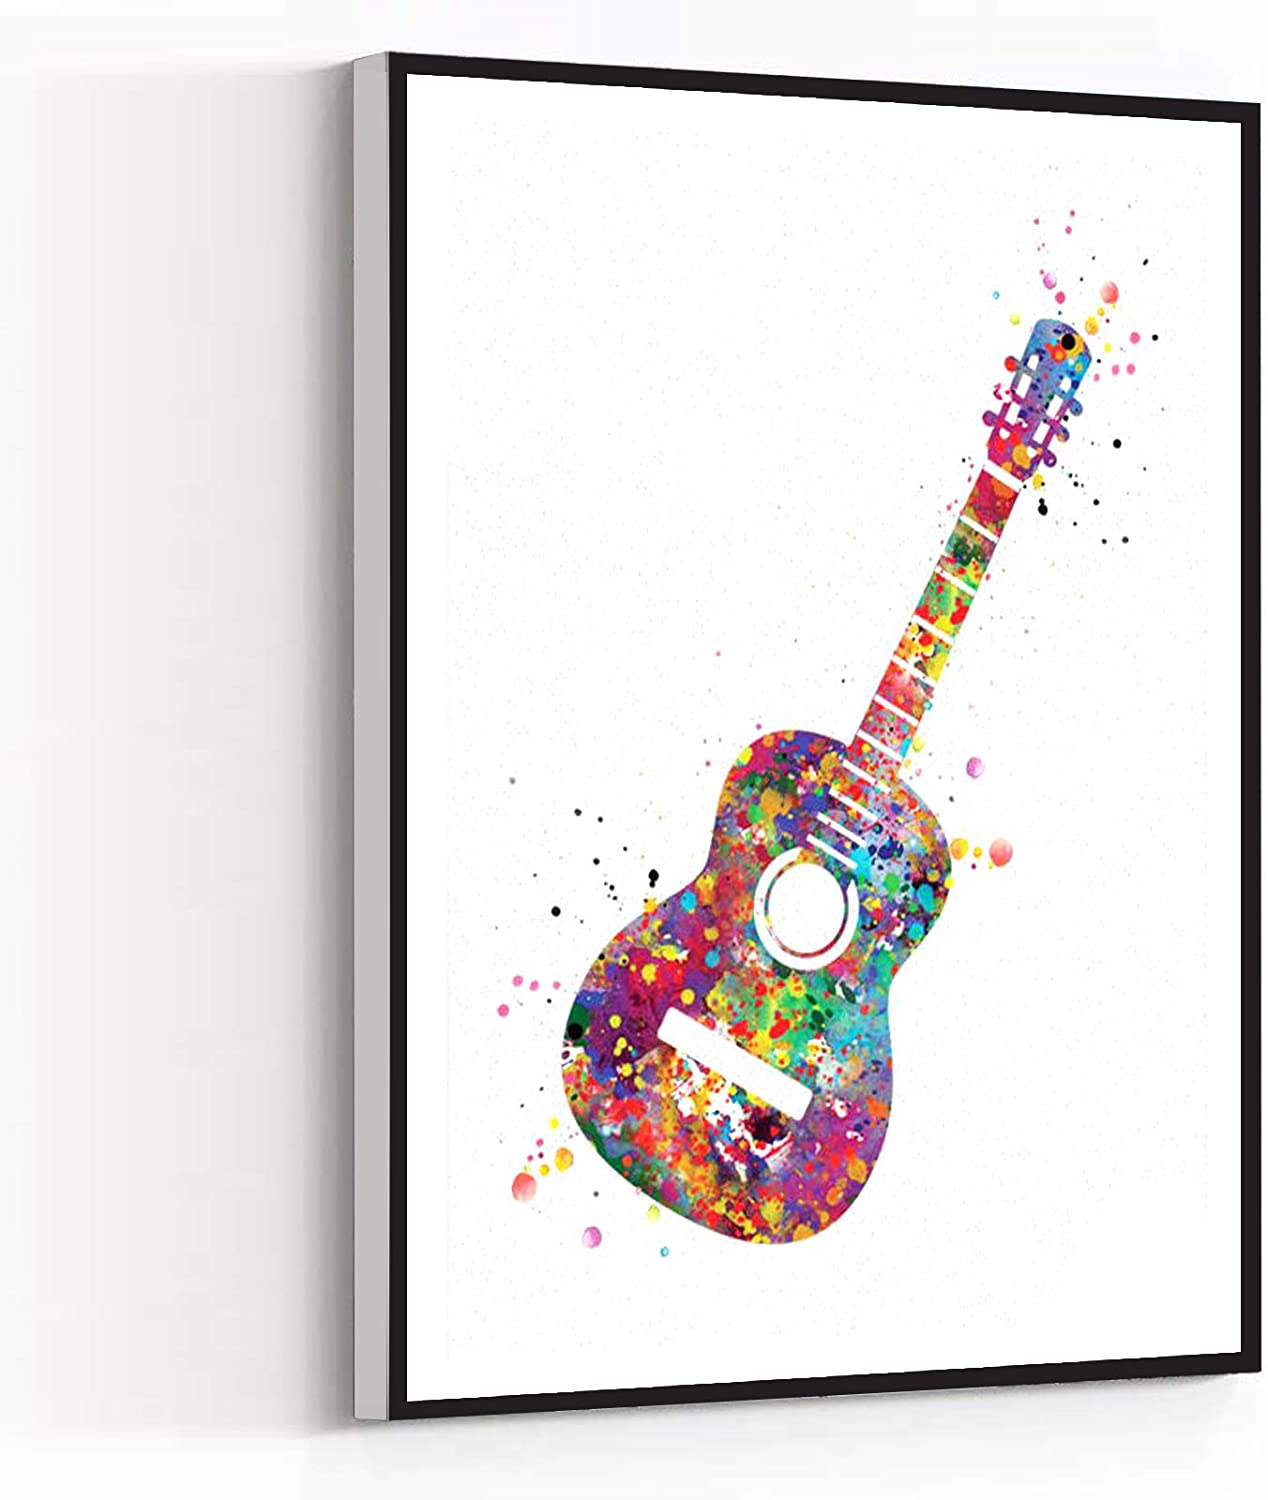 CANVAS WALL ART FOR LIVING ROOM,room decour,Acoustic Guitar Music Instrument Watercolor Print Classic Guitar Player Music Art Wall Decor Guitarist Gift Geekery Nerdy Wall Hanging,12''x18'' Framed